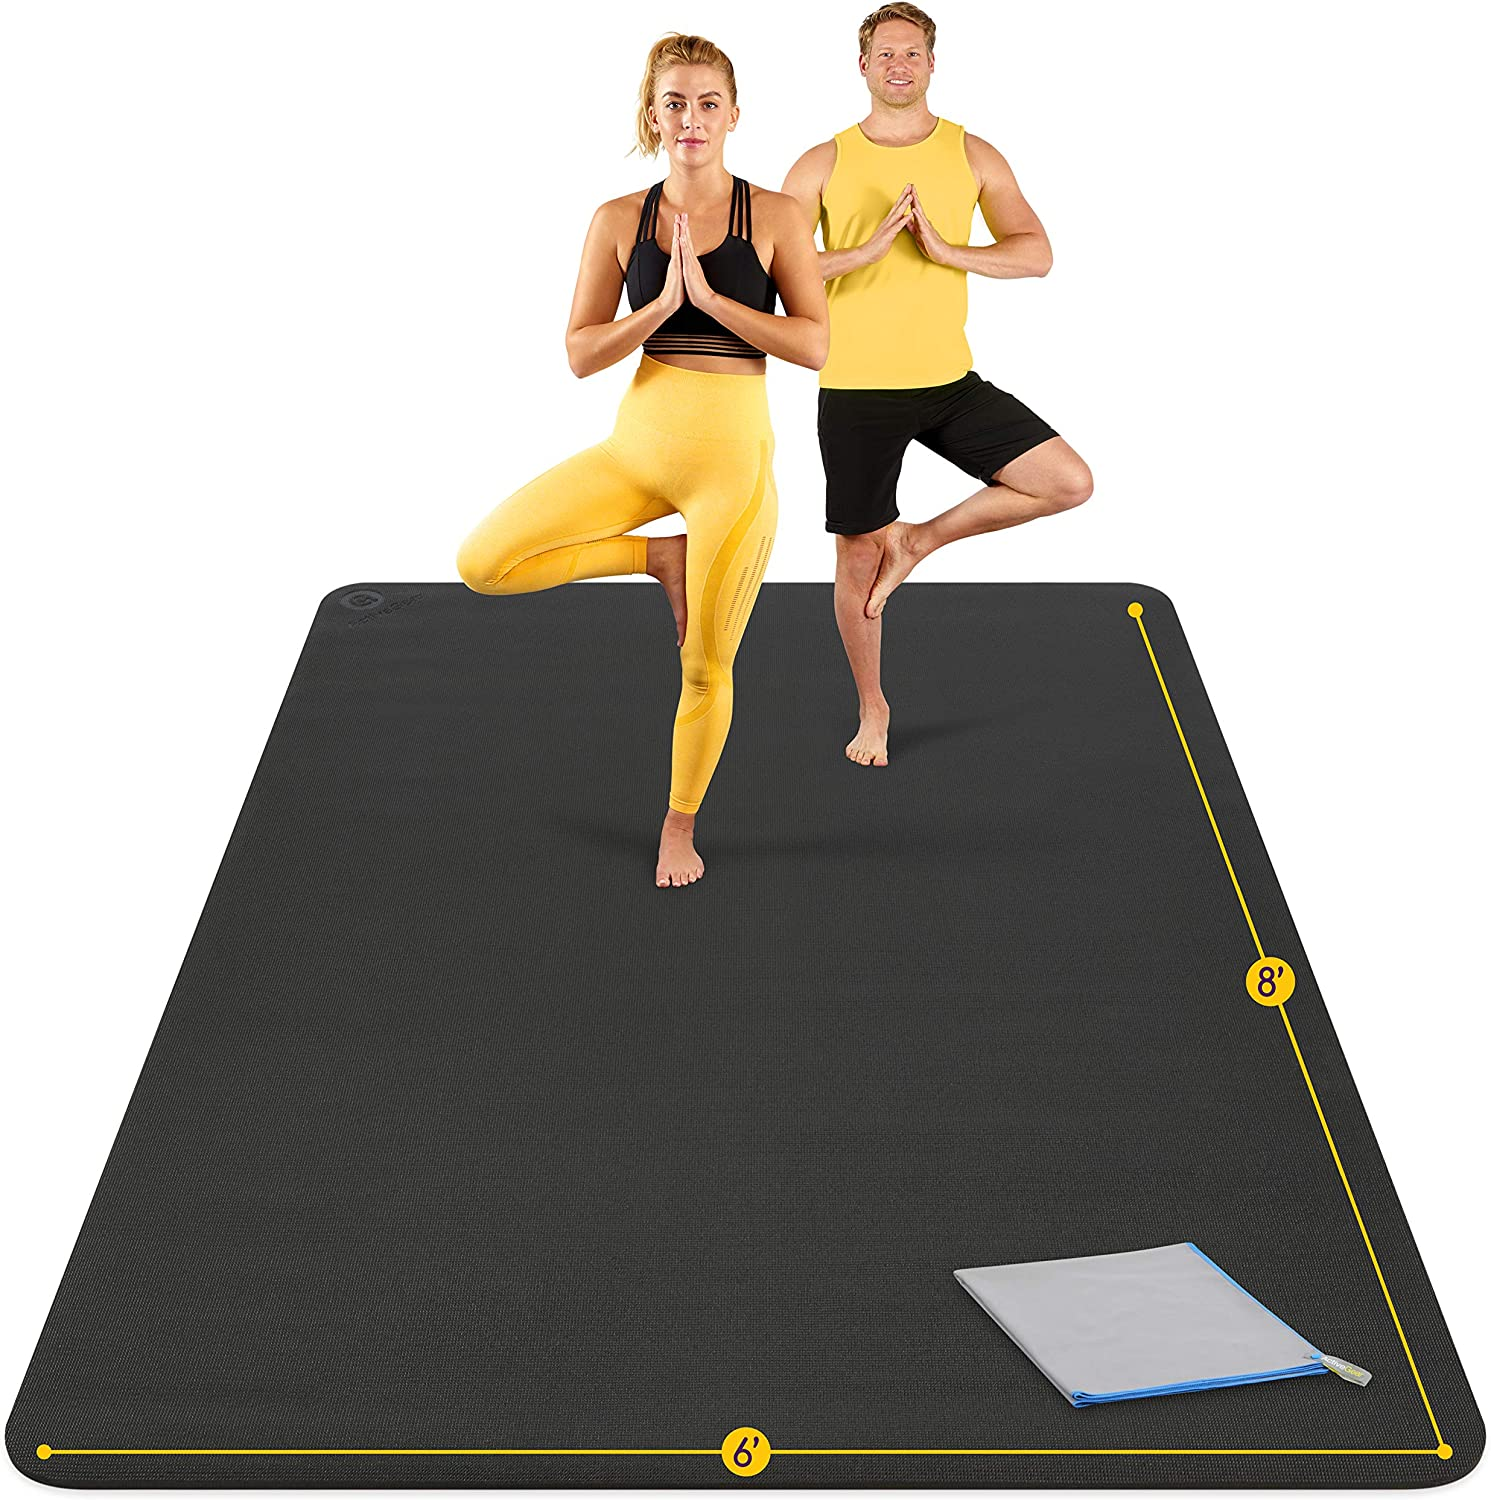 Large Yoga Mat 8'x6'x8mm Extra Thick, Durable, Eco-Friendly, Non-Slip & Odorless Barefoot Exercise and Premium Fitness Home Gym Flooring Mat by ActiveGear